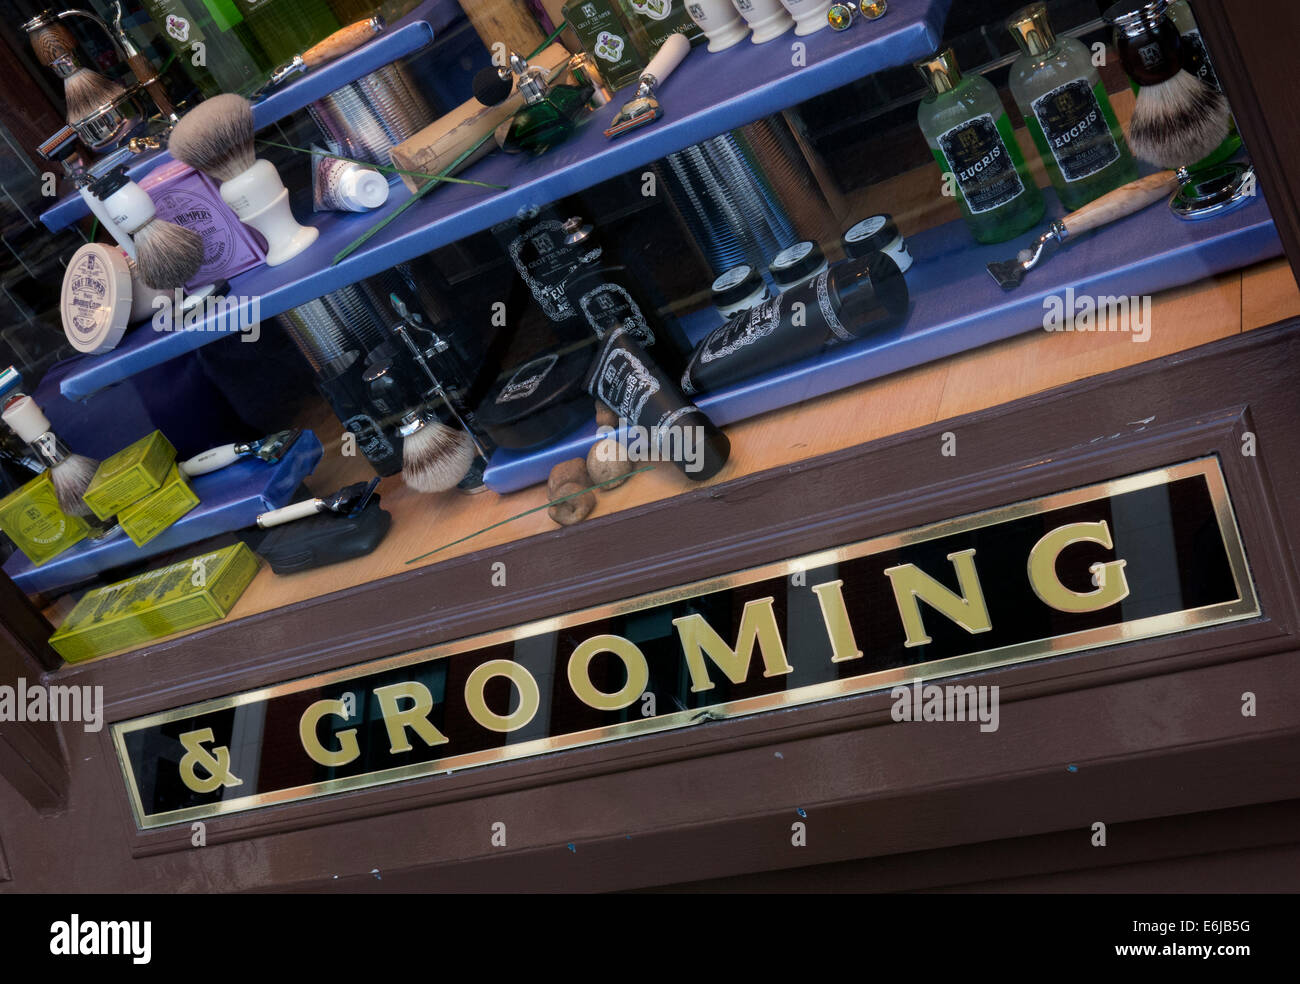 Geo. F. Trumper Gentleman's barbers and perfumers shop, Duke of York St, Mayfair, London, England UK - Stock Image